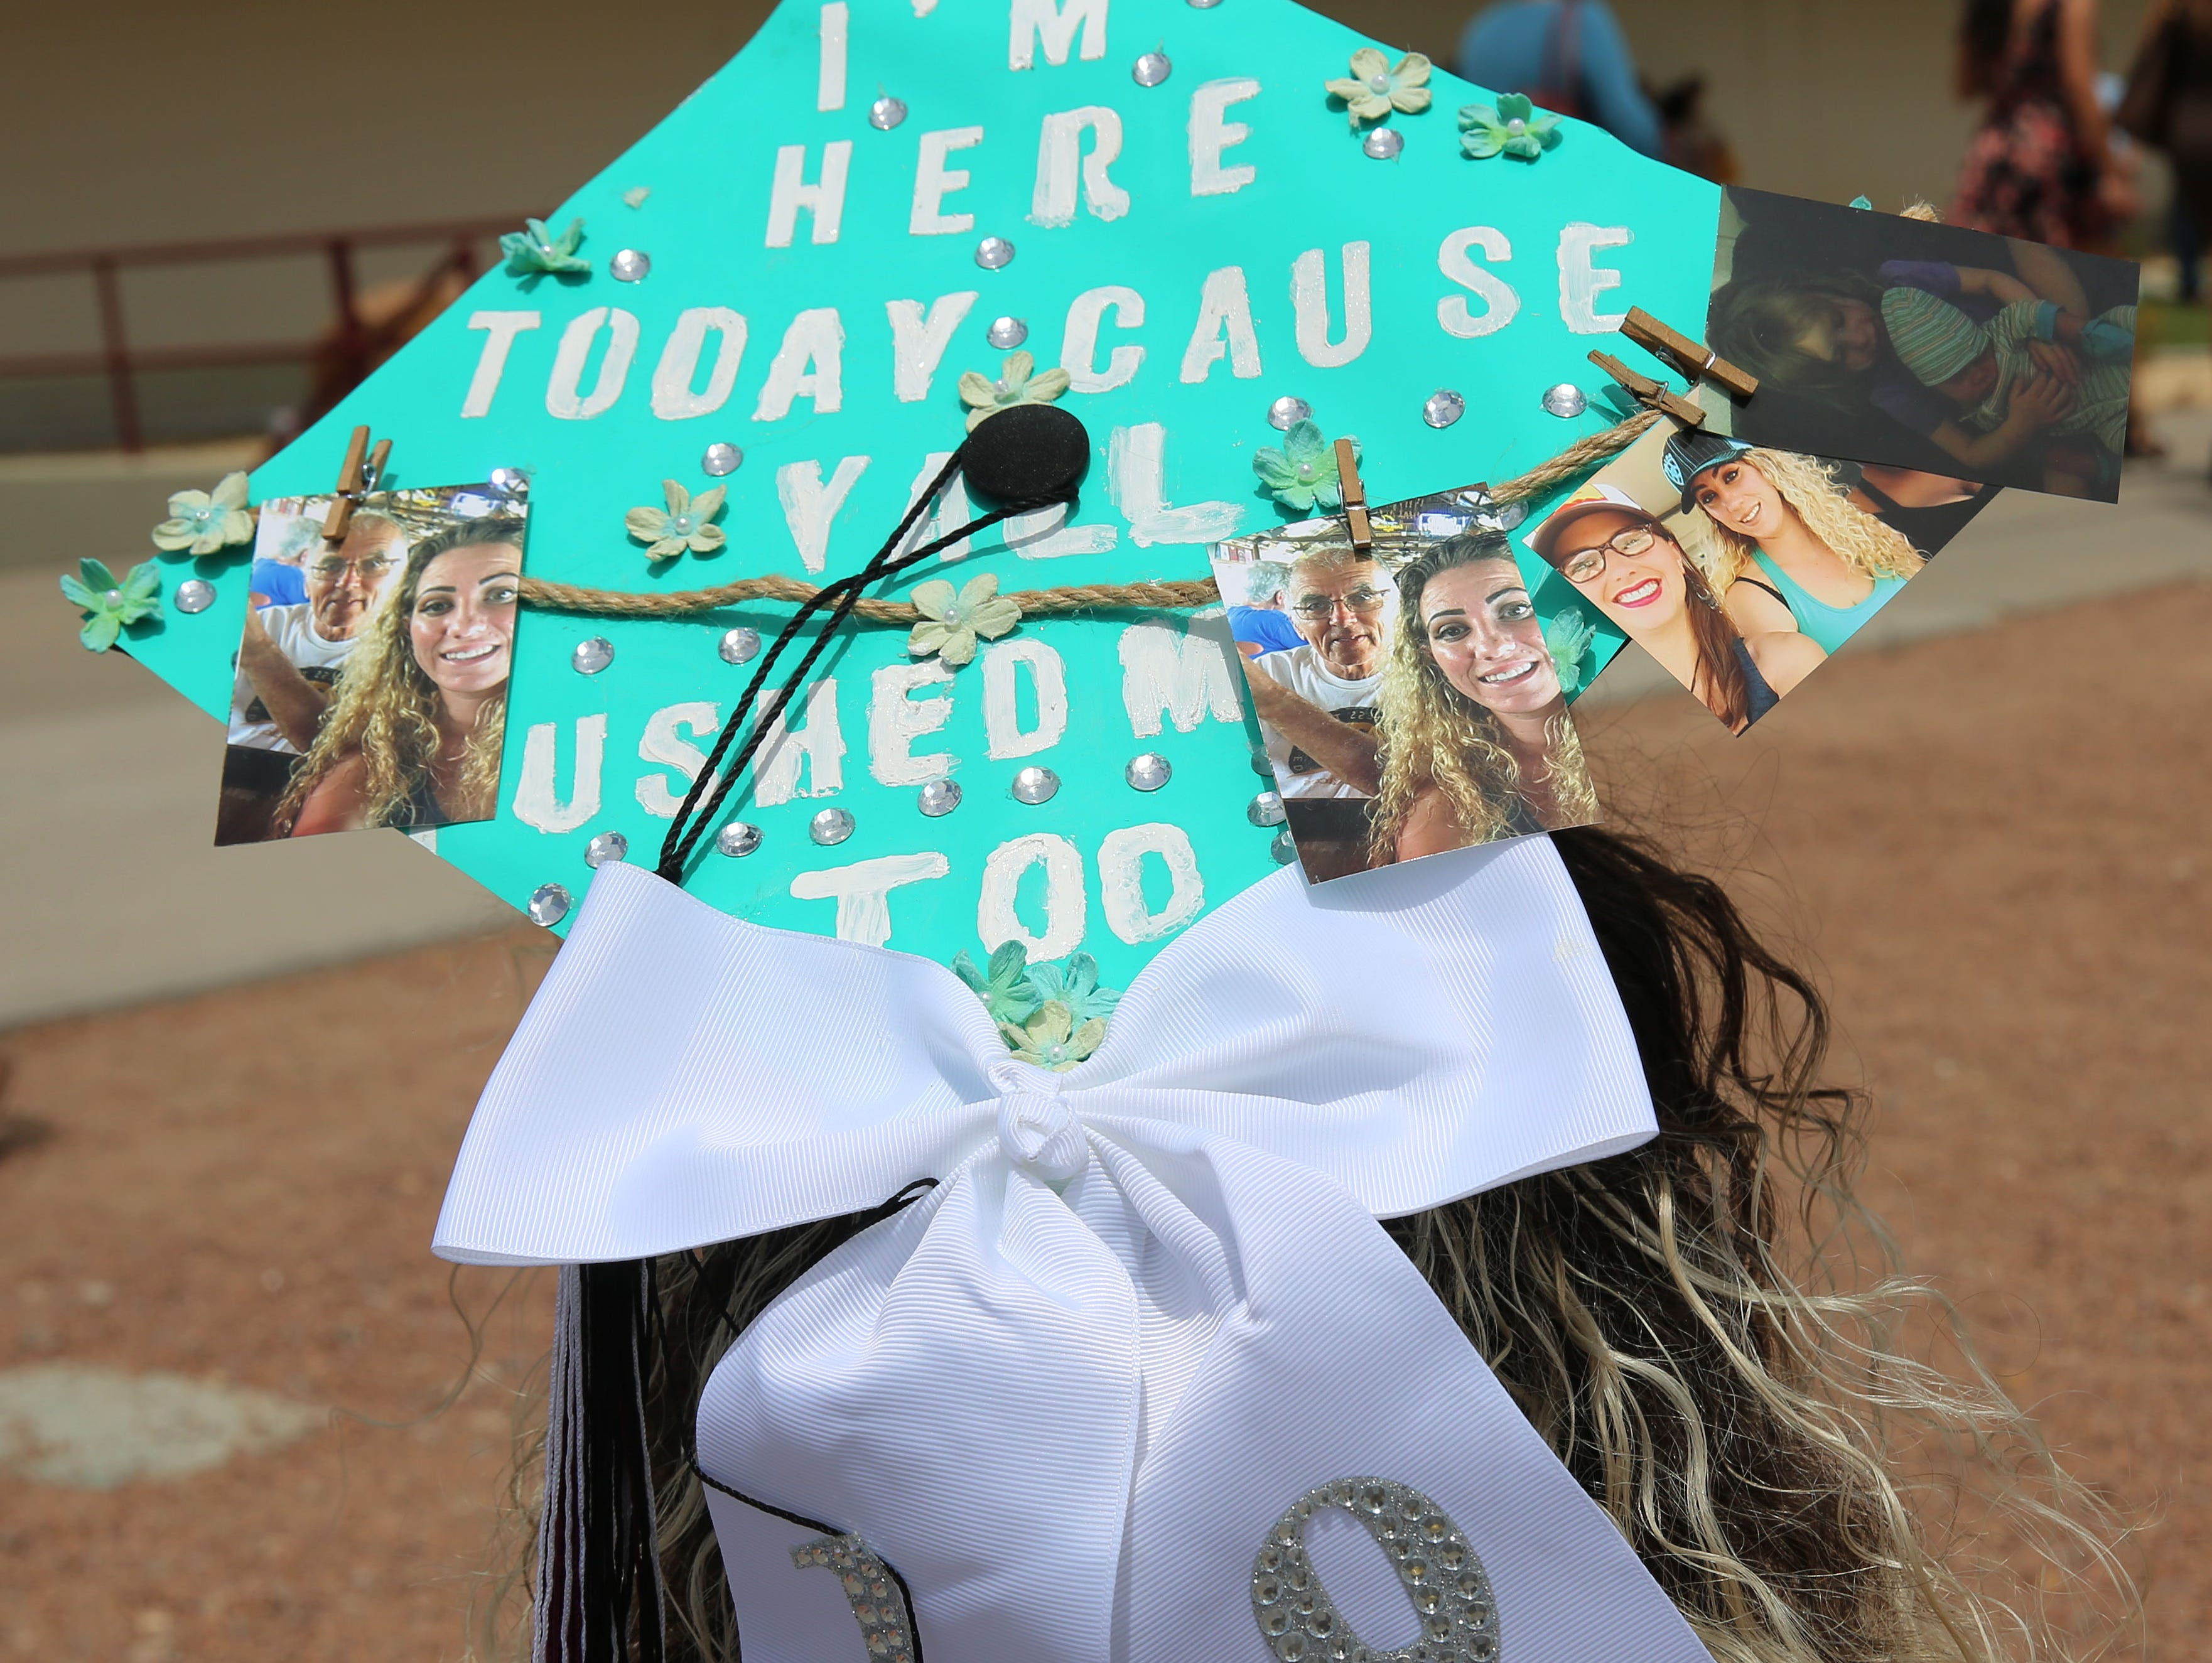 Mariana Fountain has always been interested in agriculture, and the way the business is run. That's why she earned a Bachelor of Arts degree in agricultural economics and business, with minors in finance and marketing. The mother or two, said her kids helped push her through school, so she decorated her hat in honor of them.